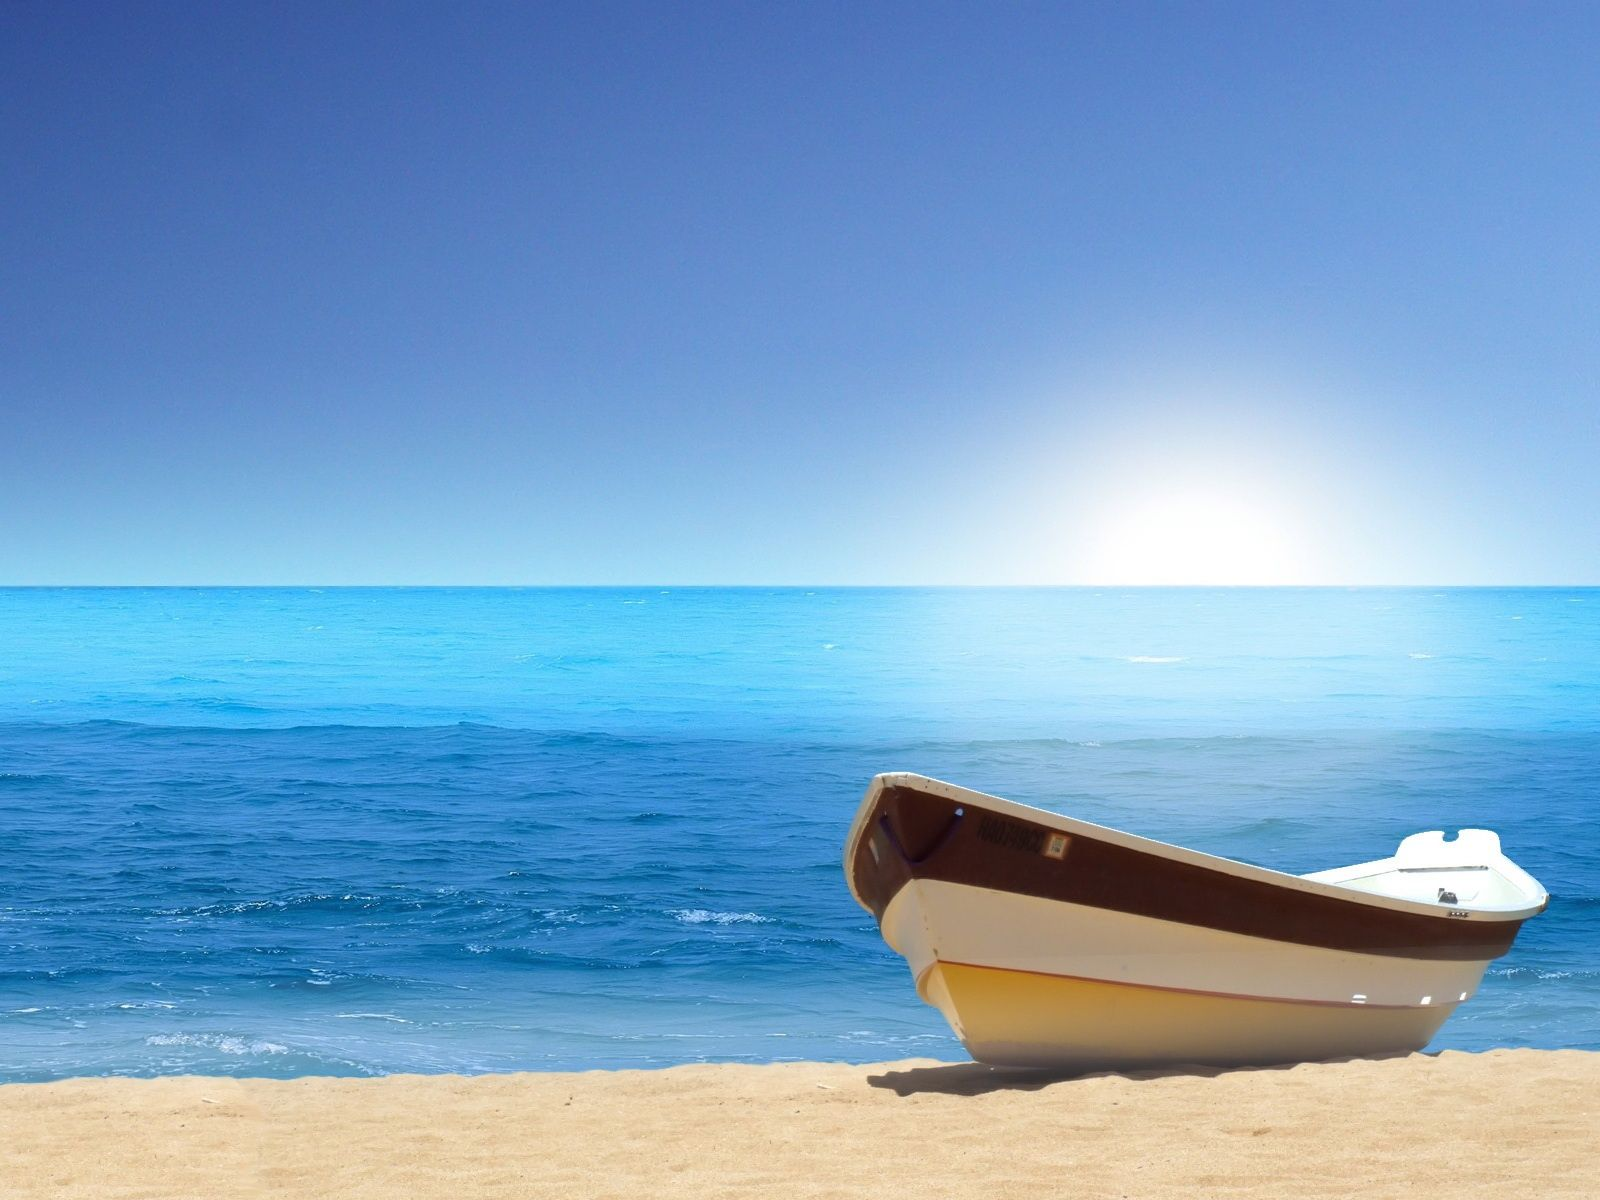 ... Of Beach: A Small Boat On The